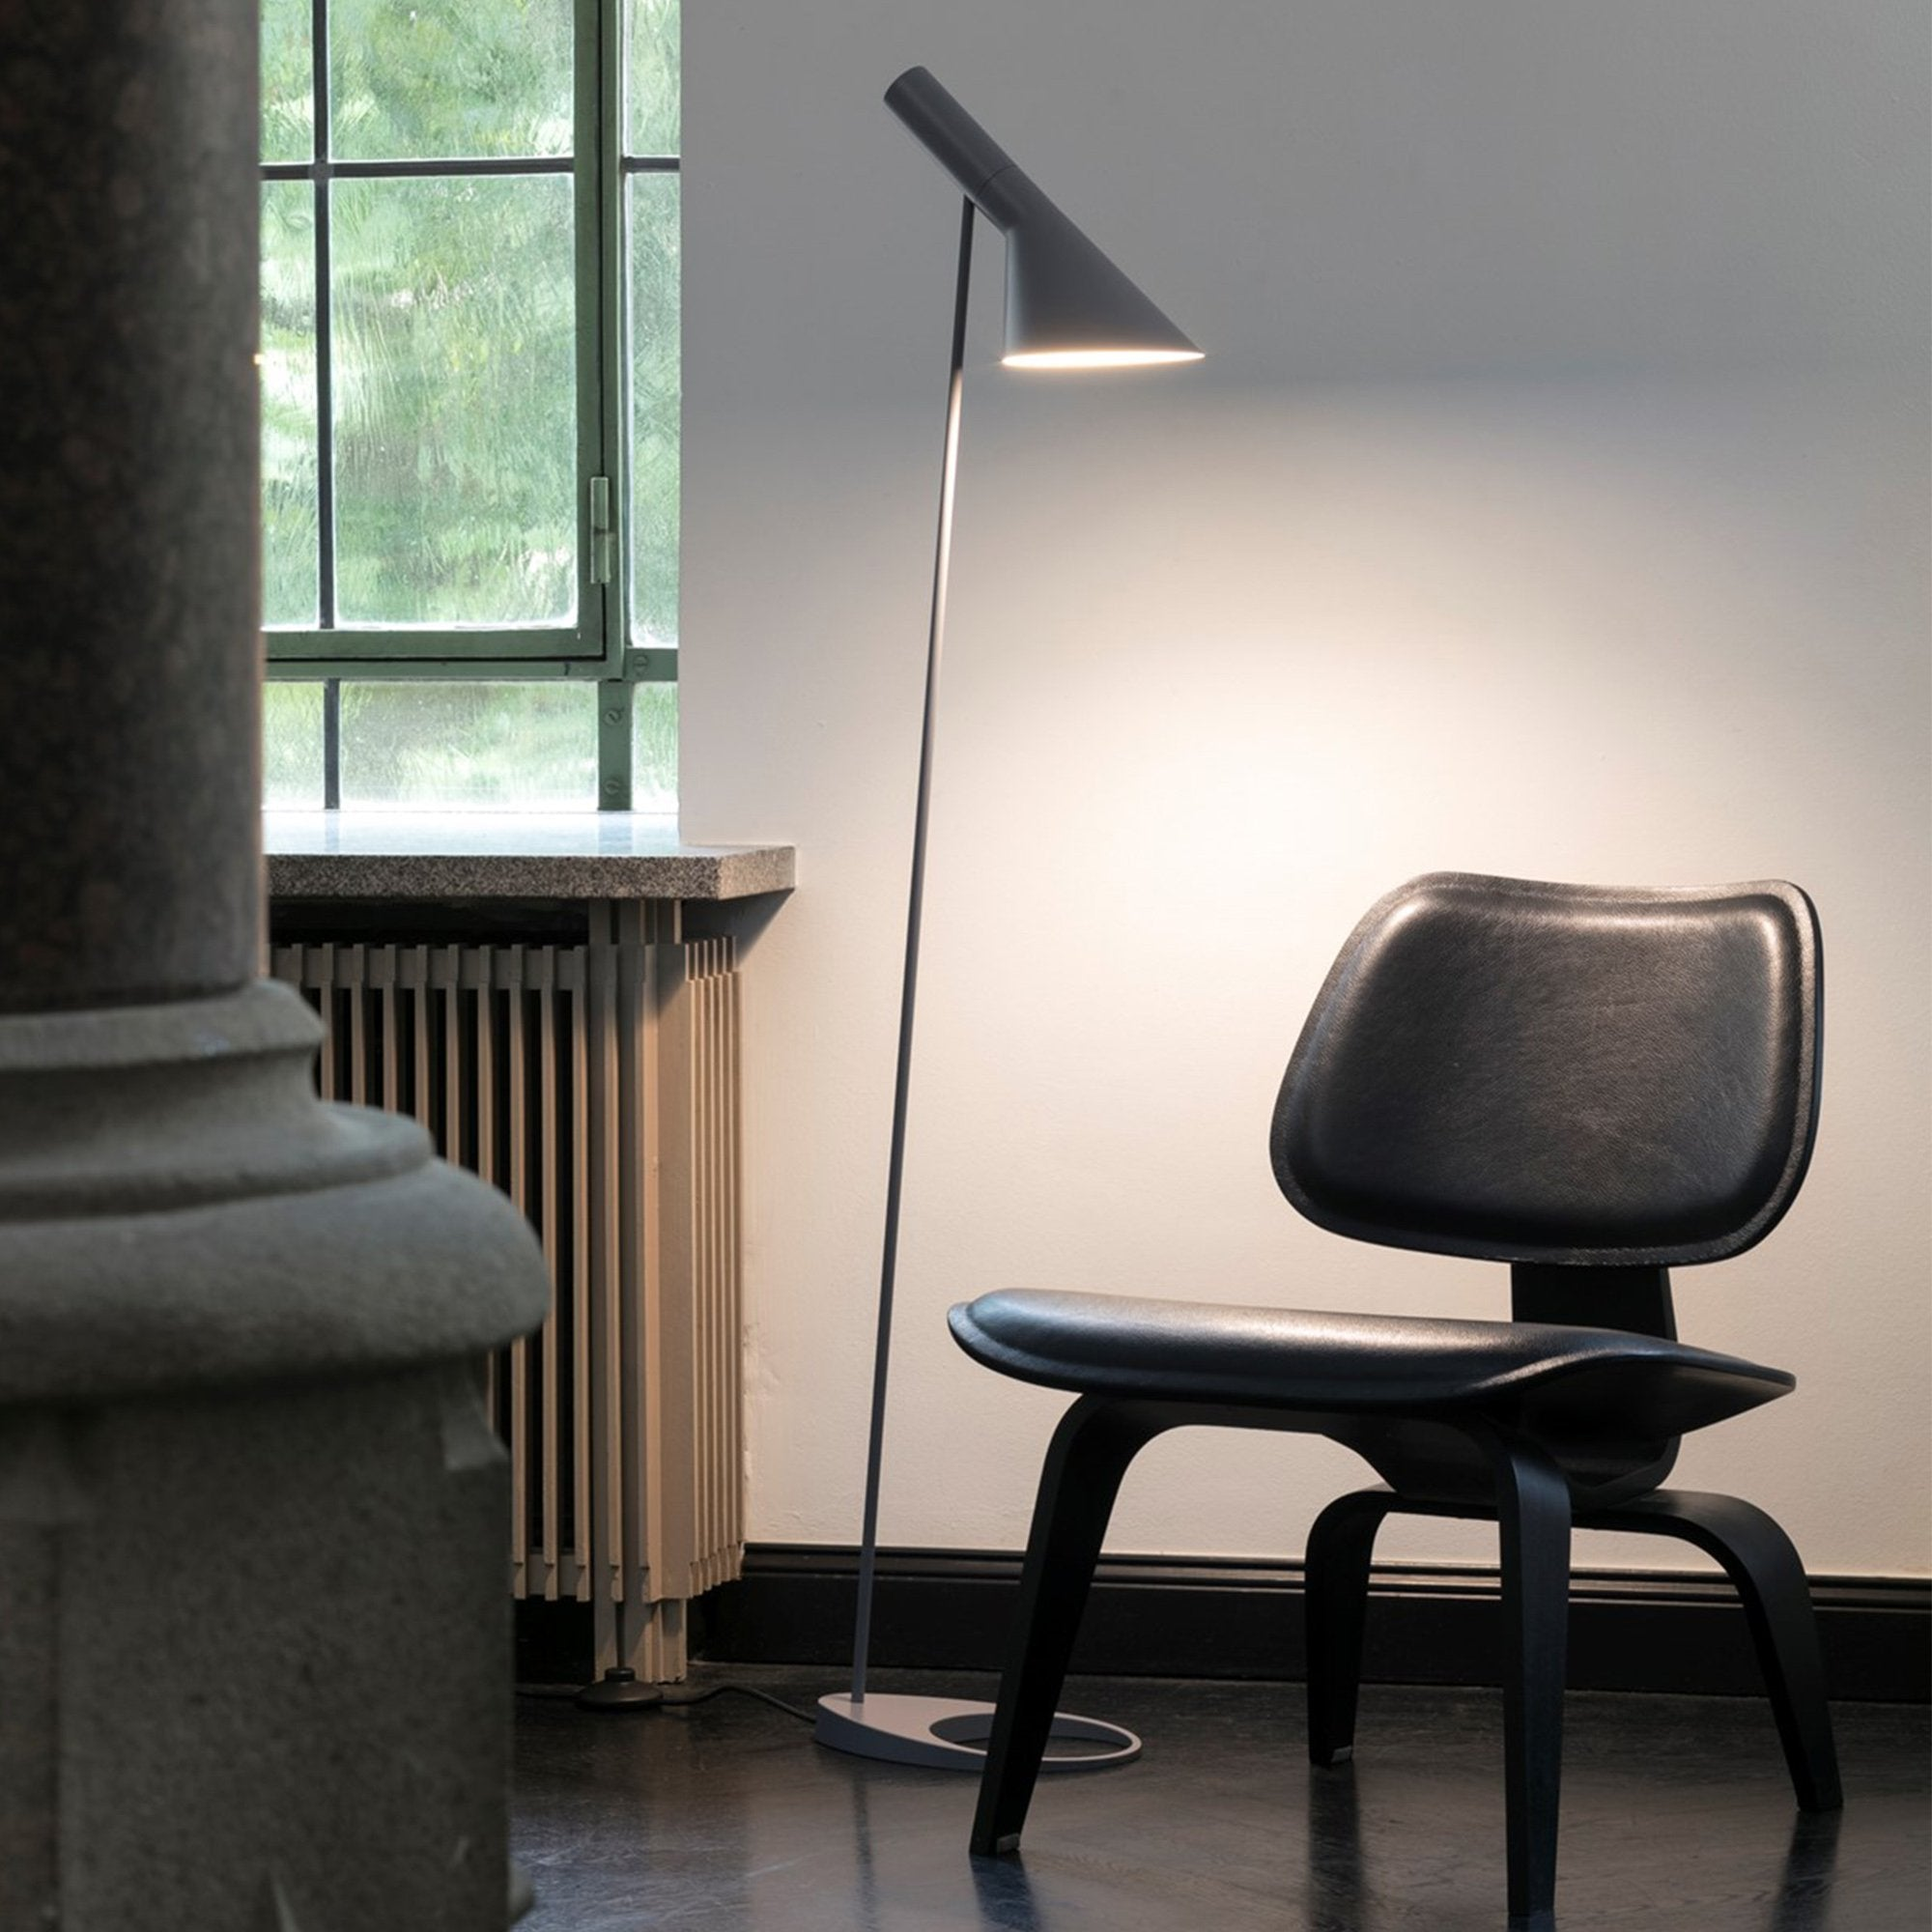 Louis Poulsen AJ Floor Lamp by Arne Jacobsen